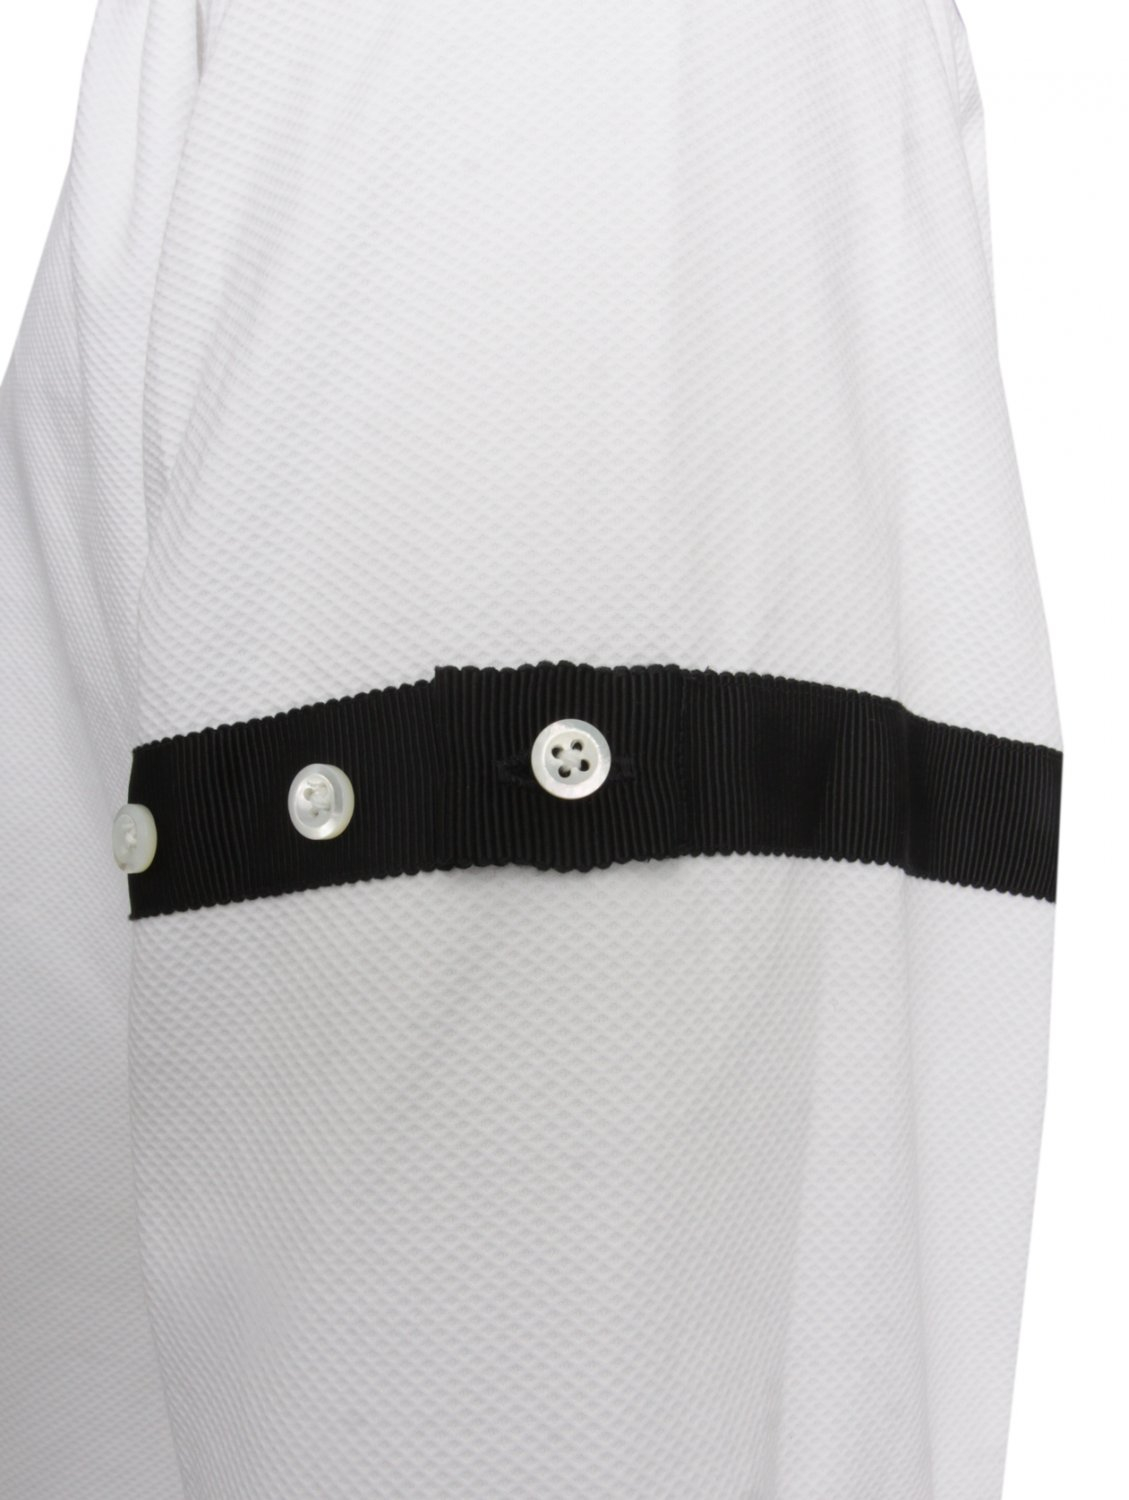 Thom browne classic shirt white pique with black tipping for Thom browne white shirt